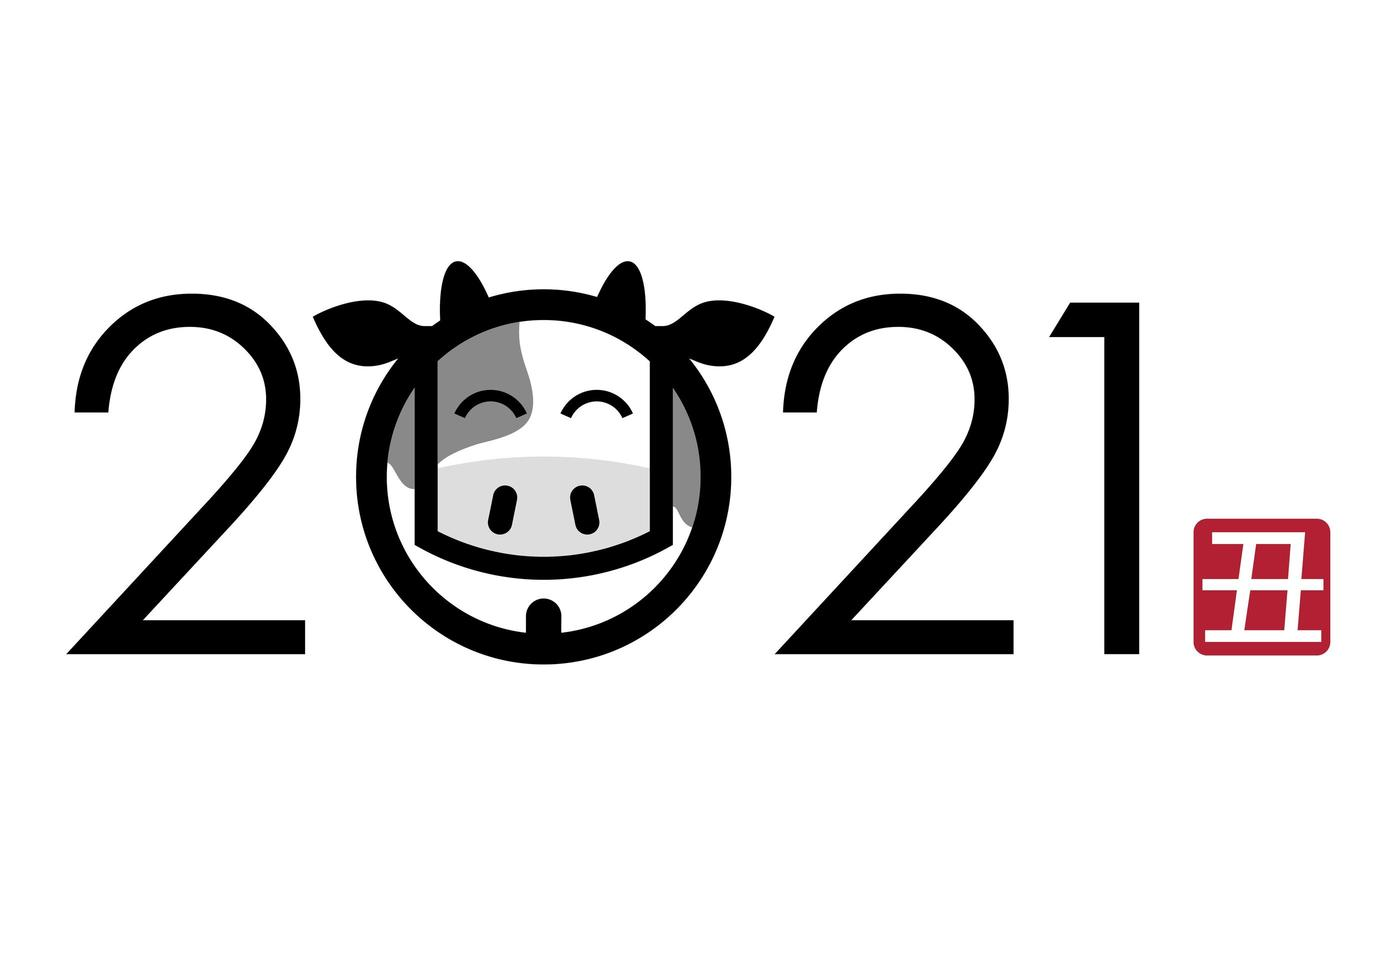 2021 Year of the ox lettering design vector